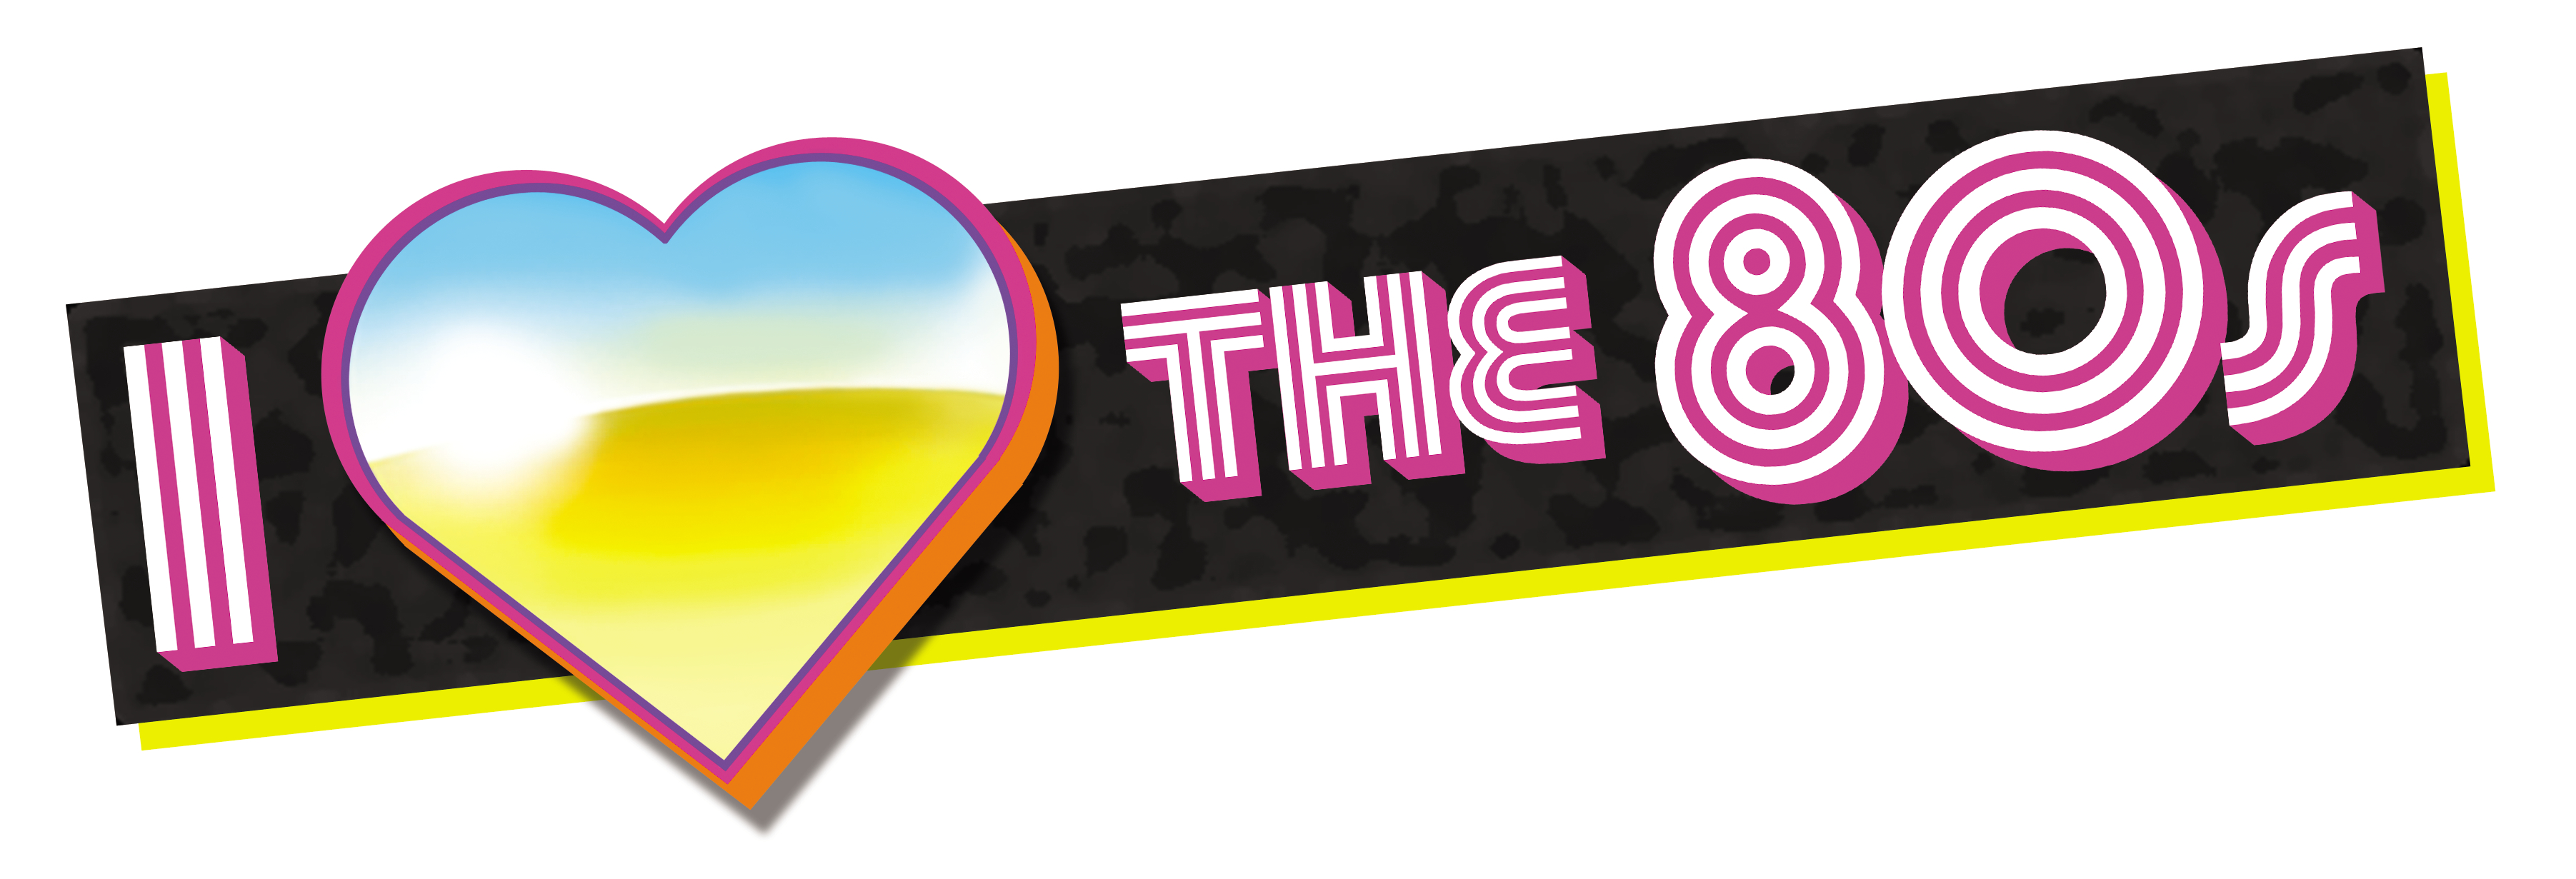 s free download. 80's clipart 80 music